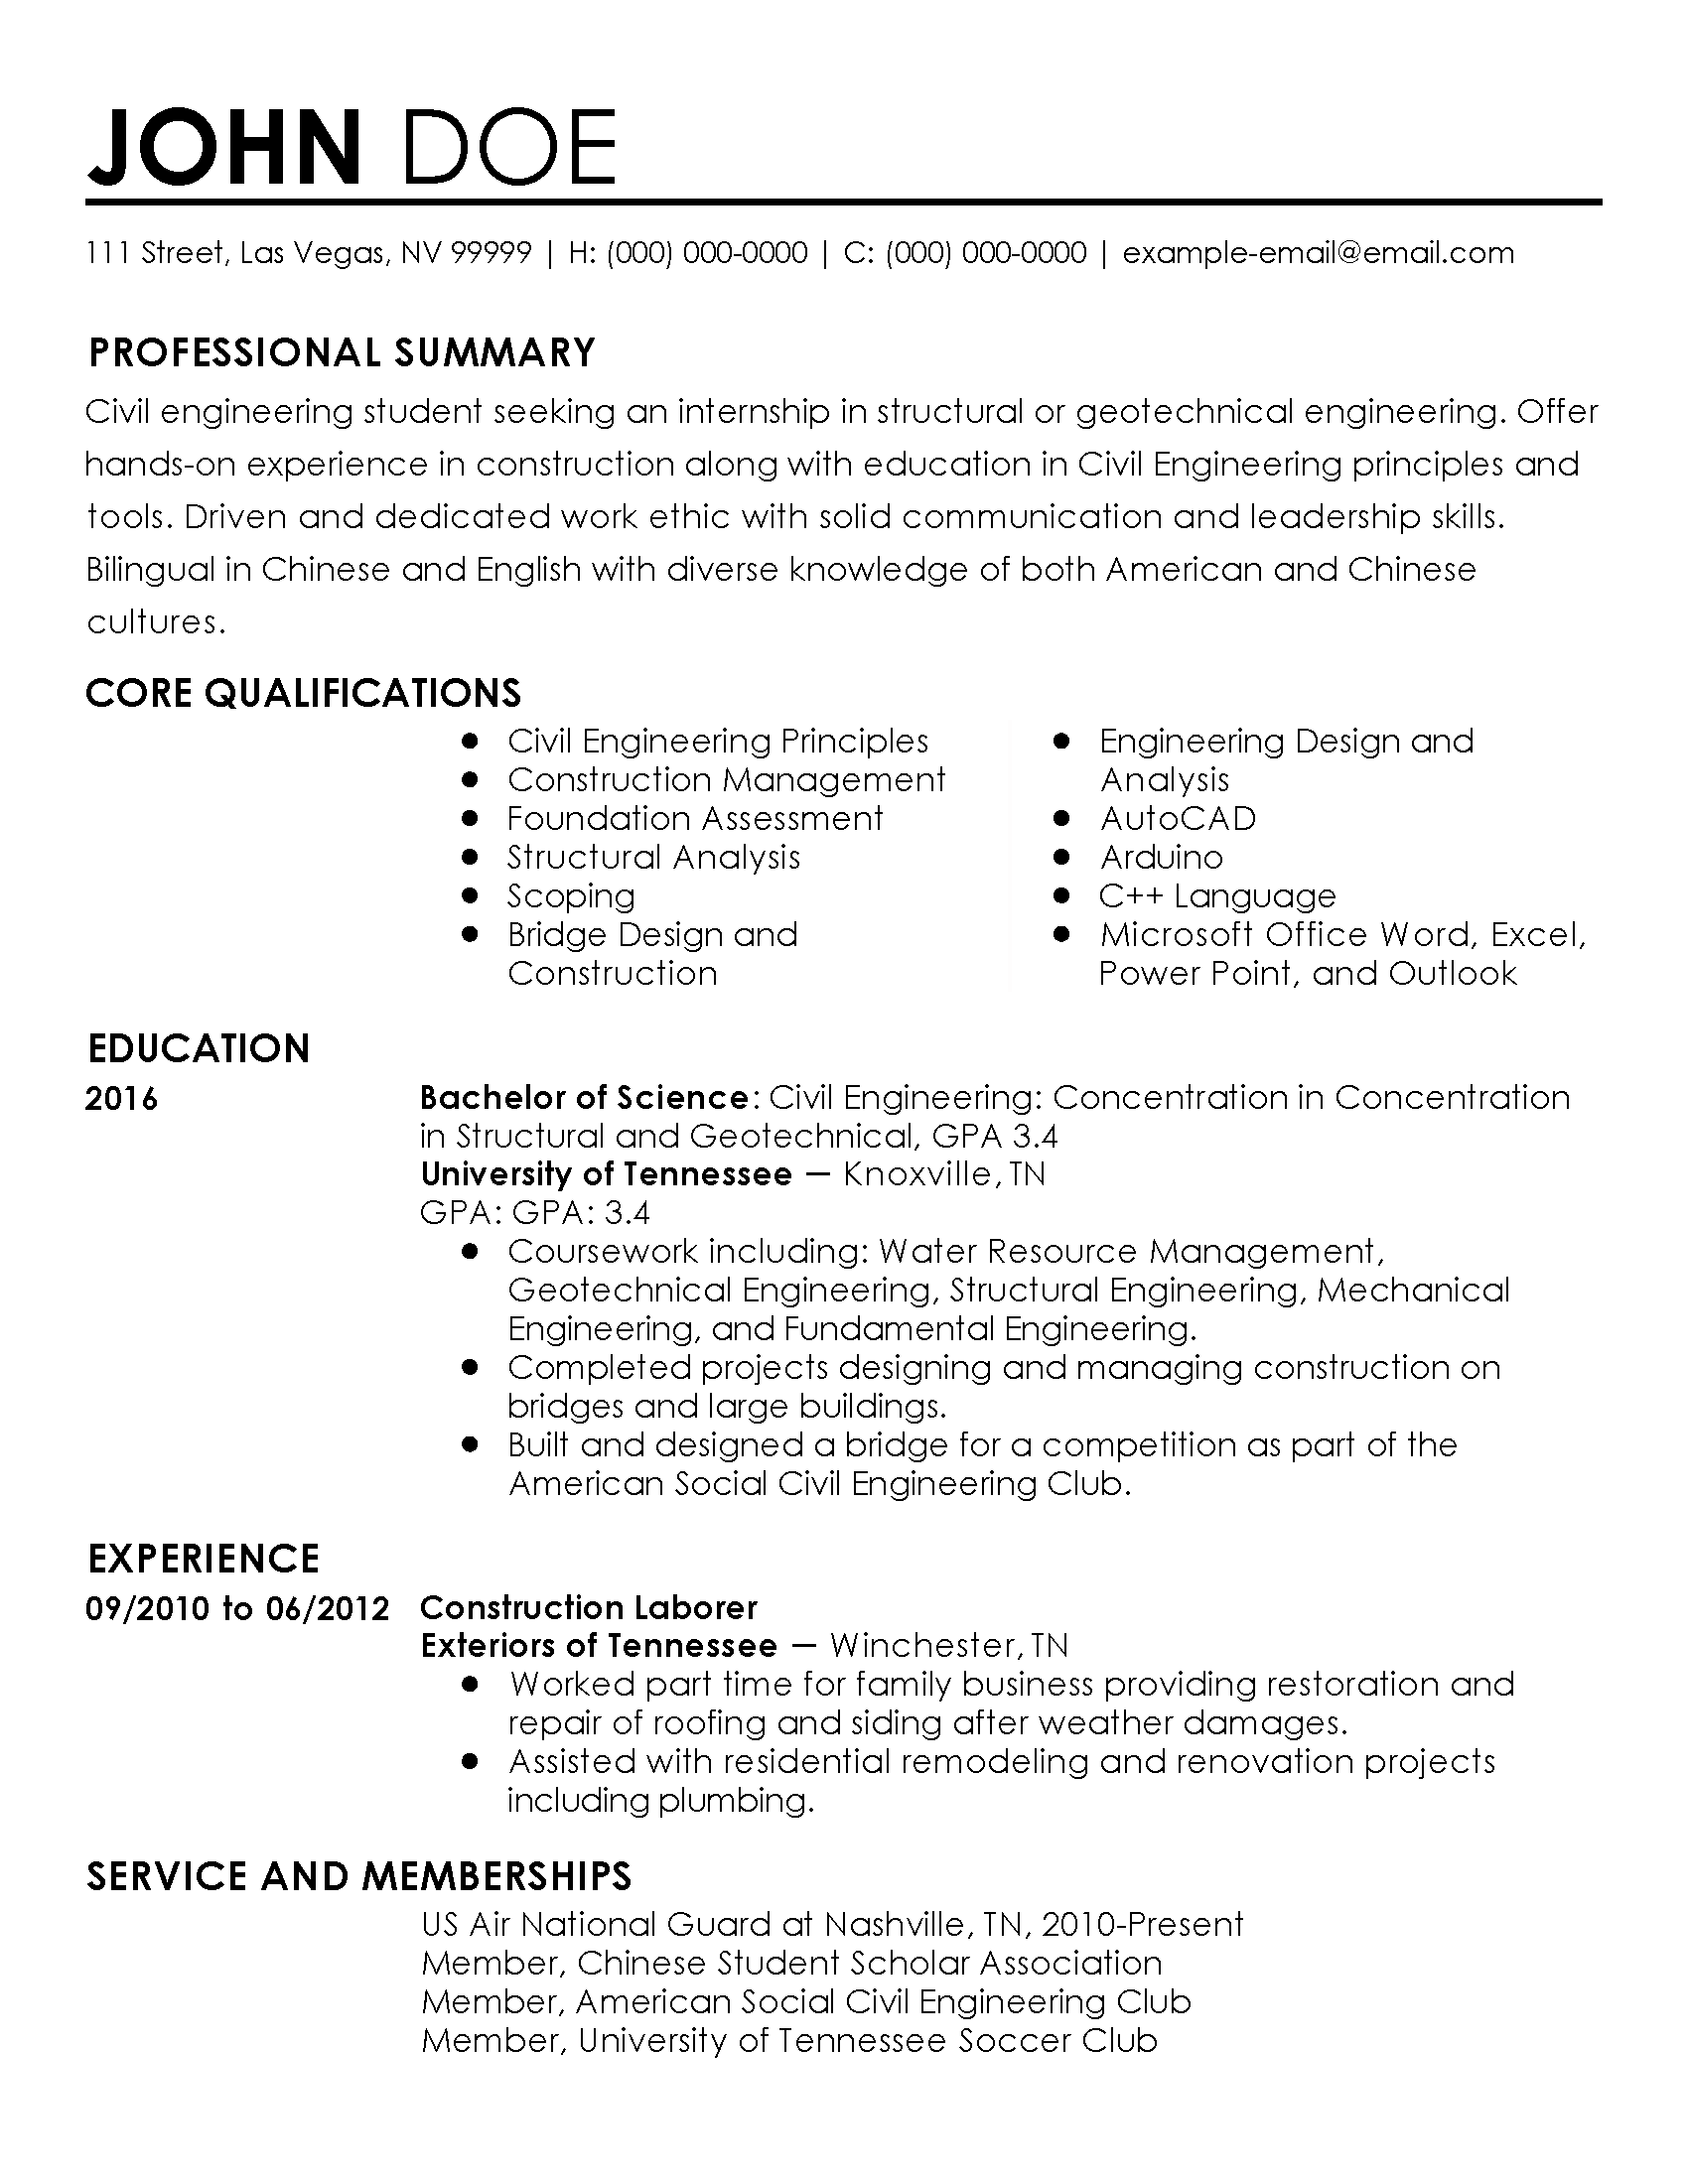 Resume Objective For Civil Engineering Student Professional Civil Engineer Intern Templates To Showcase